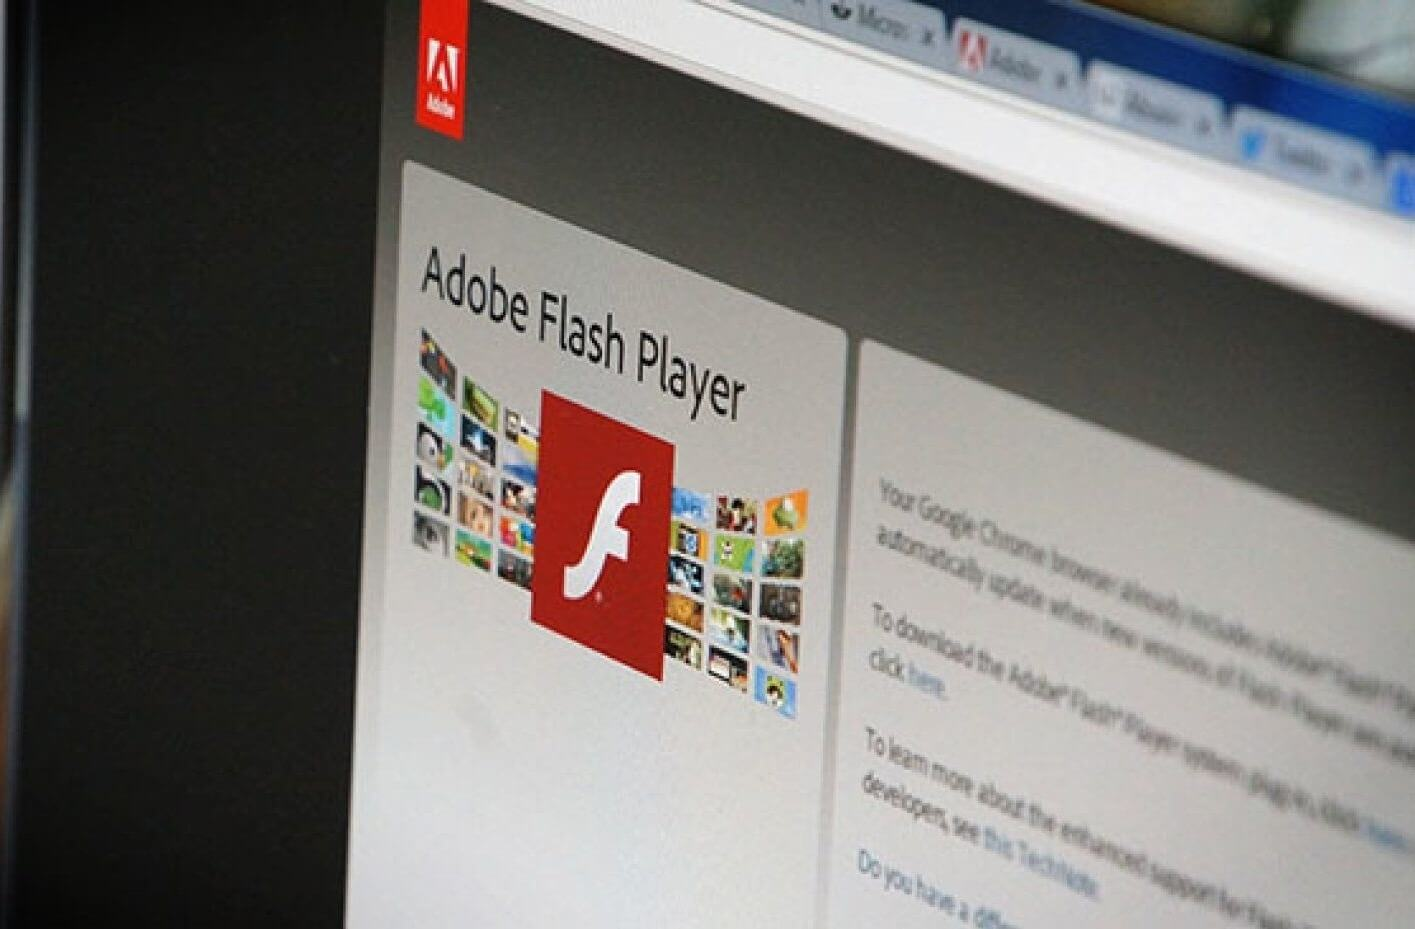 Página de descarga de Flash Player